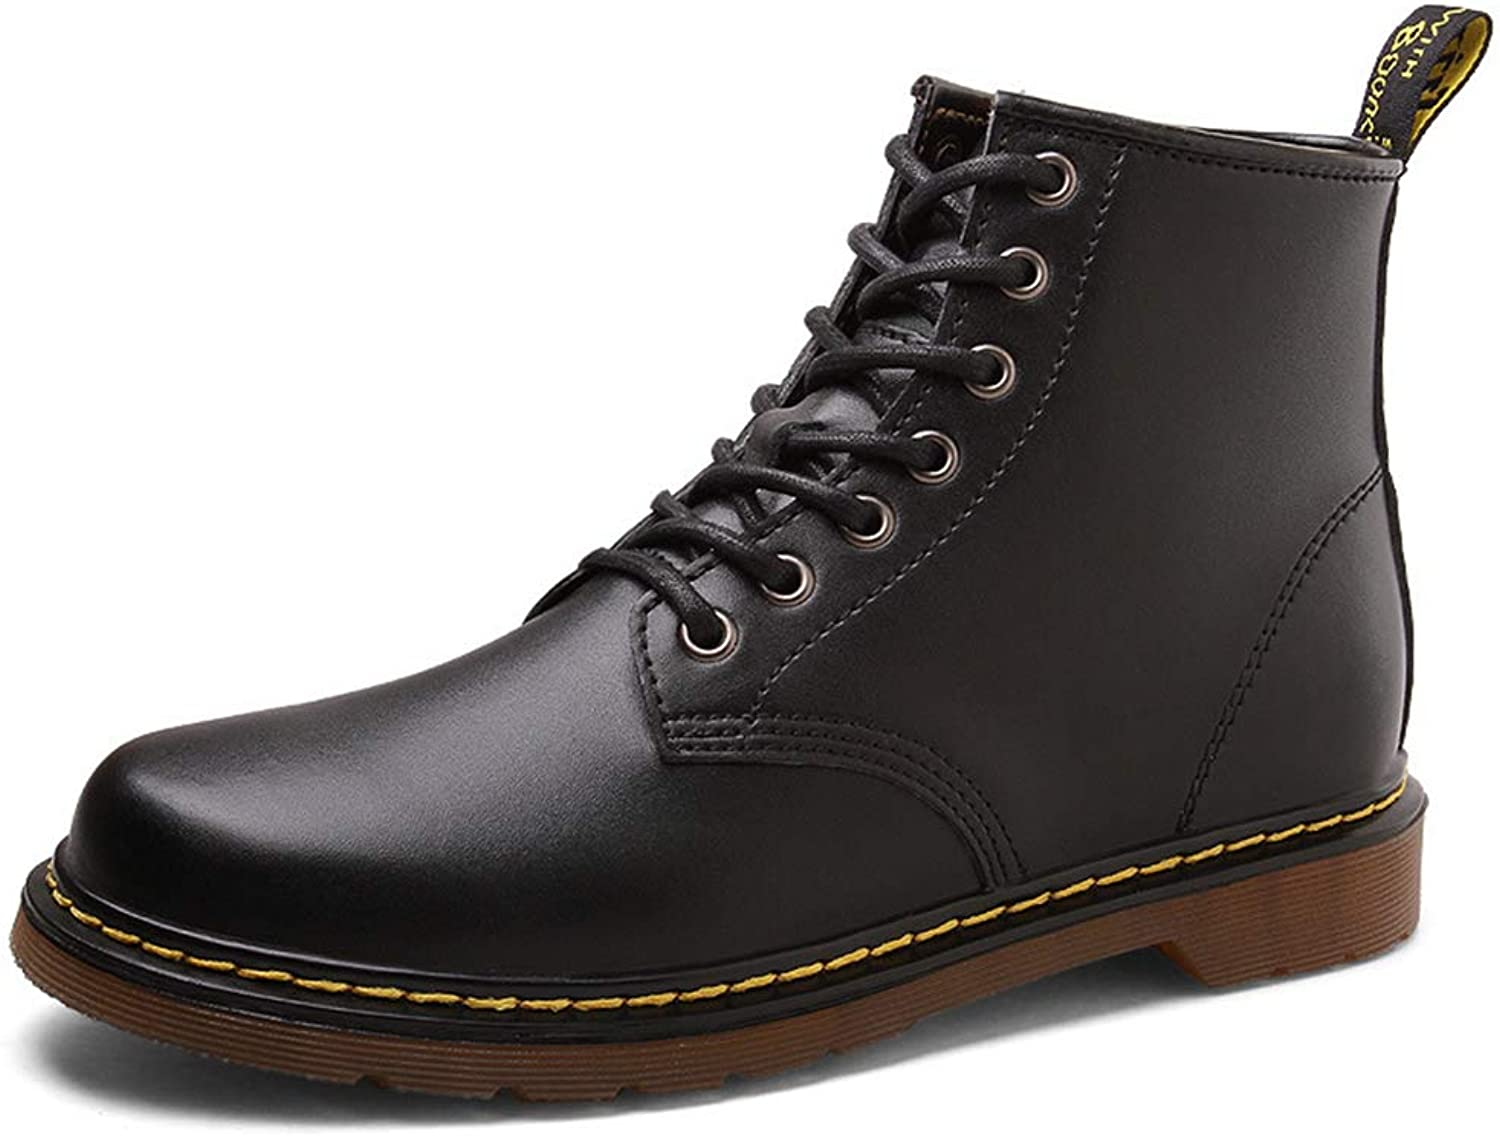 Men's shoes Fall Winter New Leather Boots Fashion Comfortable High-Top shoes Non Slip Wear-Resistant Men shoes,B,37